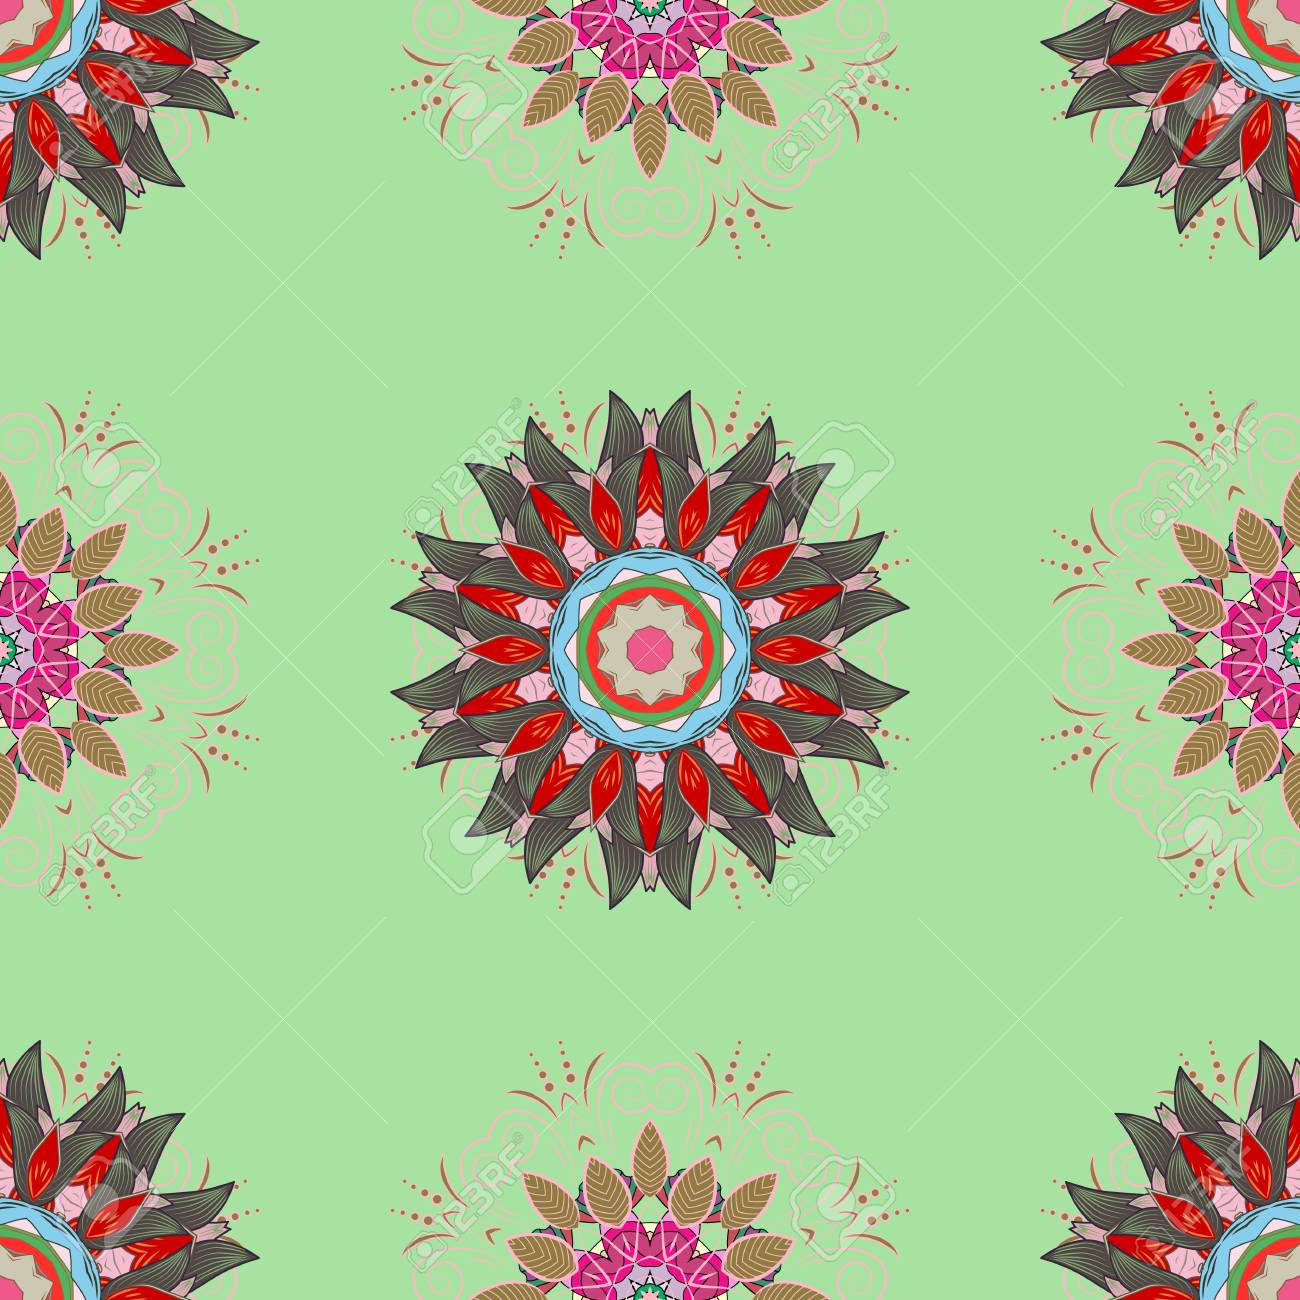 Vector Illustration Seamless Floral Pattern With Nice Doodles Royalty Free Cliparts Vectors And Stock Illustration Image 82839002